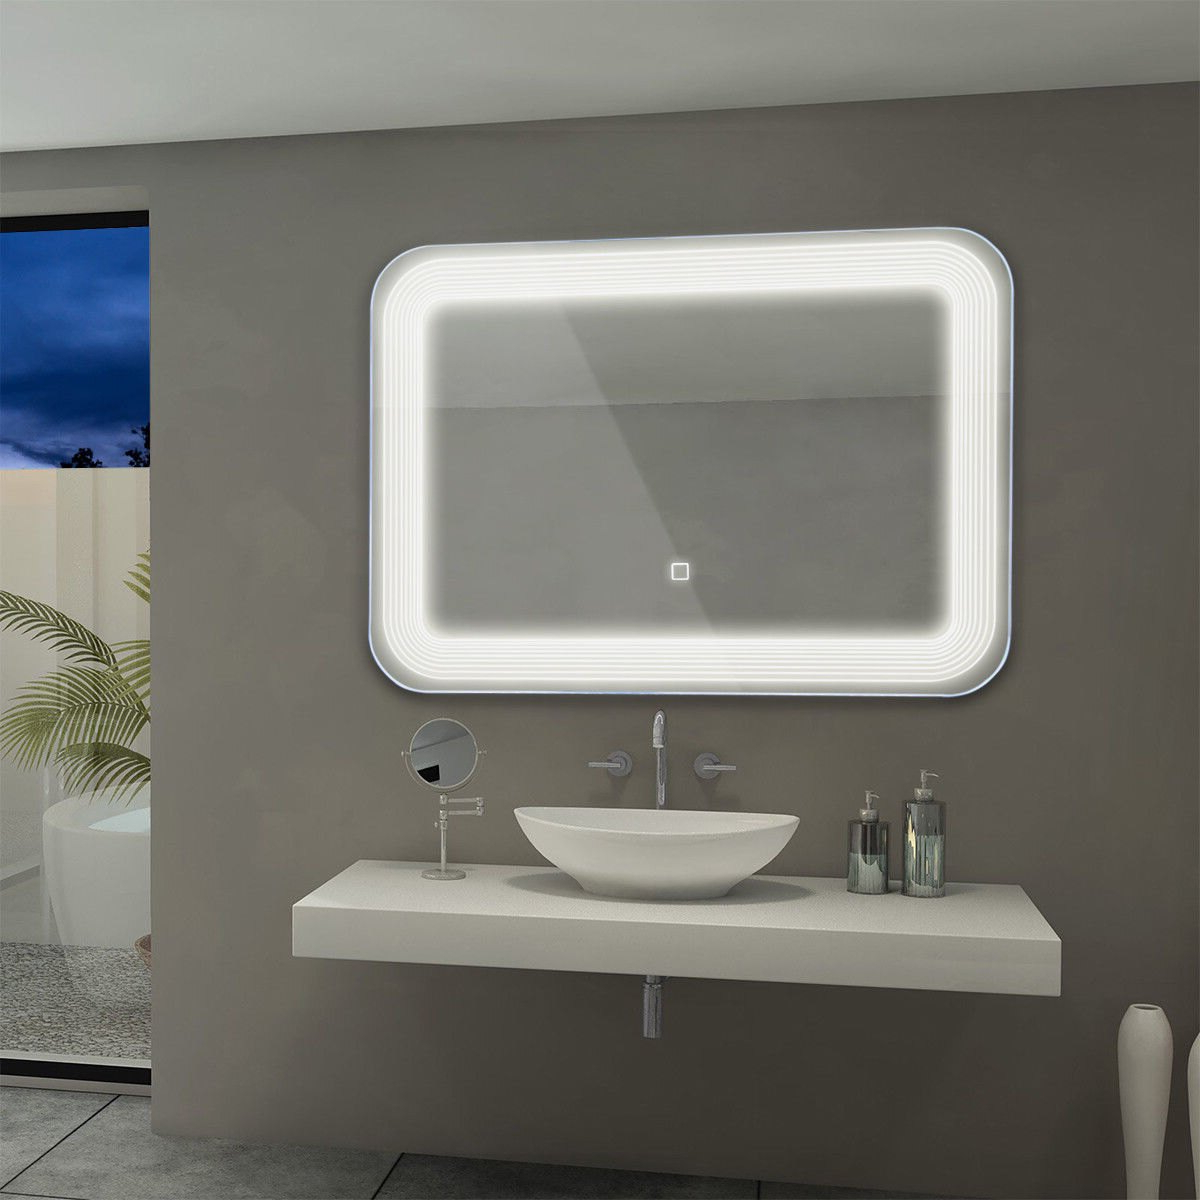 Costway Led Wall Mount Mirror Bathroom Vanity Makeup Illuminated Mirror  W/touch Button For Most Current Makeup Wall Mirrors (Gallery 8 of 20)